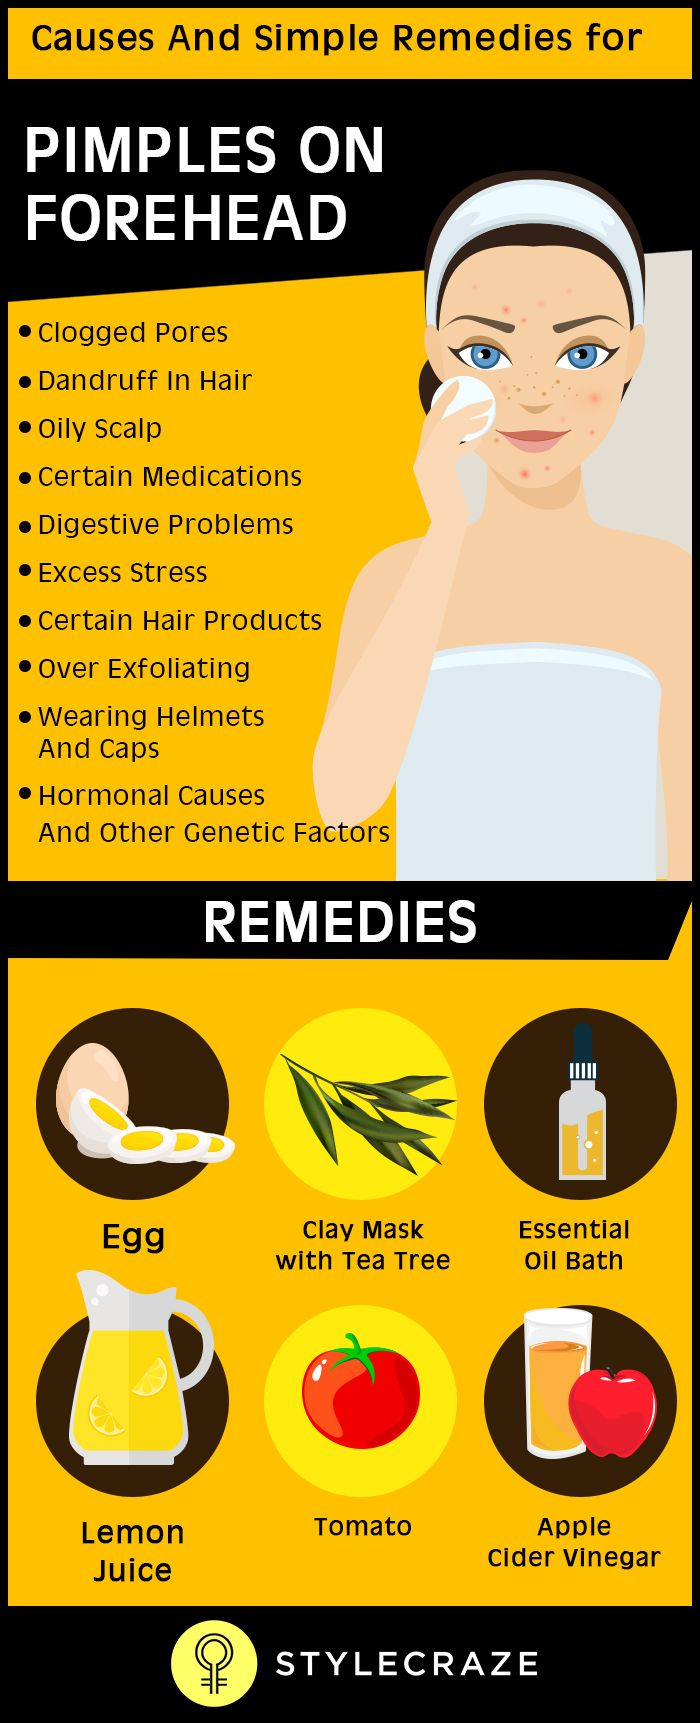 For a pimple-free skin, it is important to understand what causes forehead pimples. They cannot be your fault all the time. Contrary to the popular belief, these pimples or zits are not always caused by external factors such as food, skin care regimen or exercises. They are caused by a combination of physiological factors as well. They also develop far beneath the skin's surface that is beyond our control.